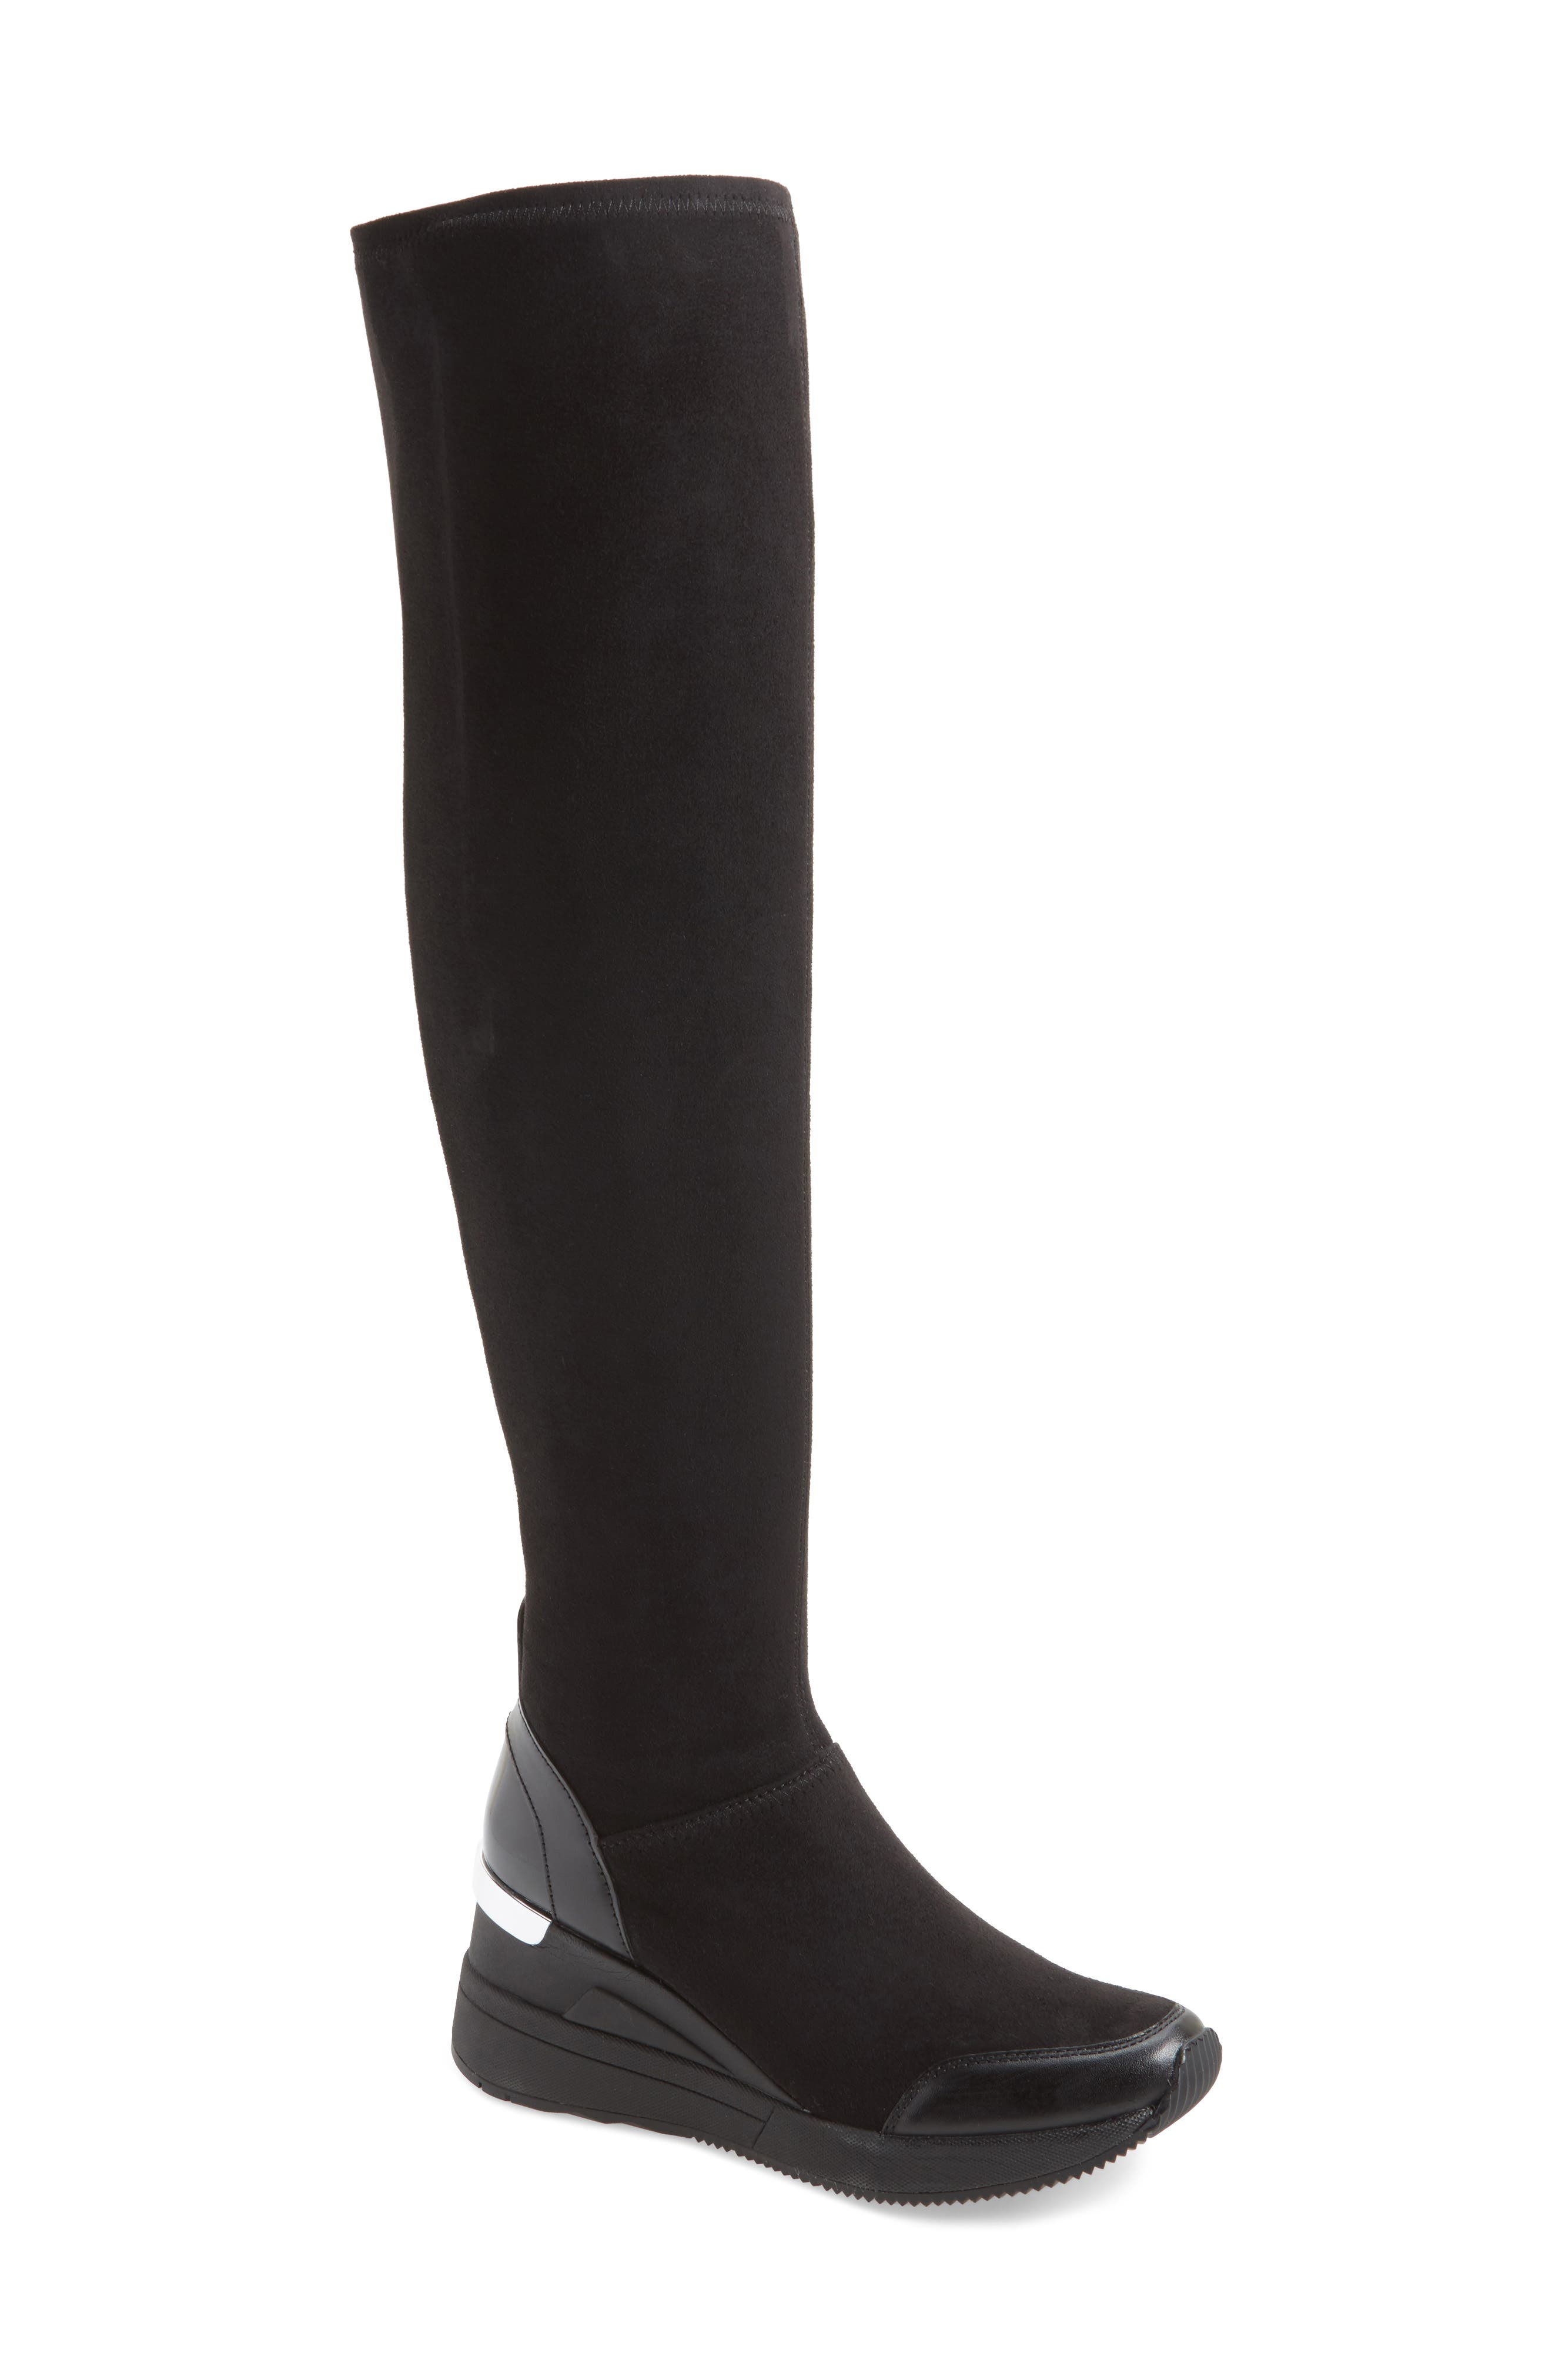 Main Image - MICHAEL Michael Kors Ace Over the Knee Boot (Women)